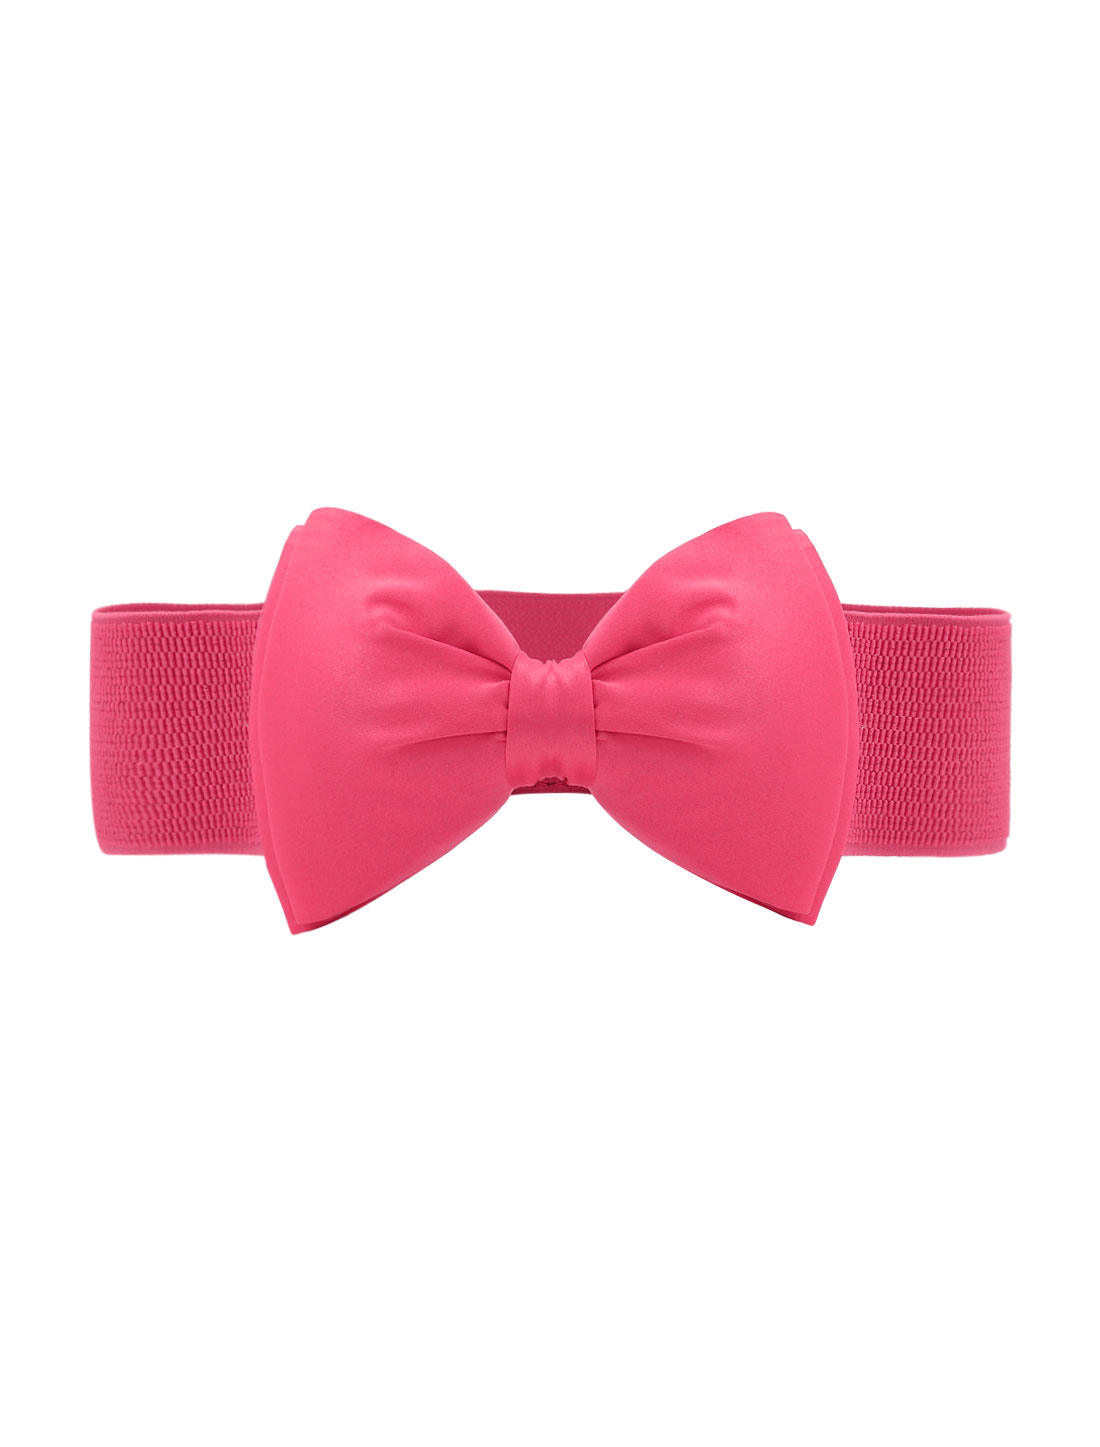 Women Press Studs Closure Bowknot Elastic Waist Belt Pink